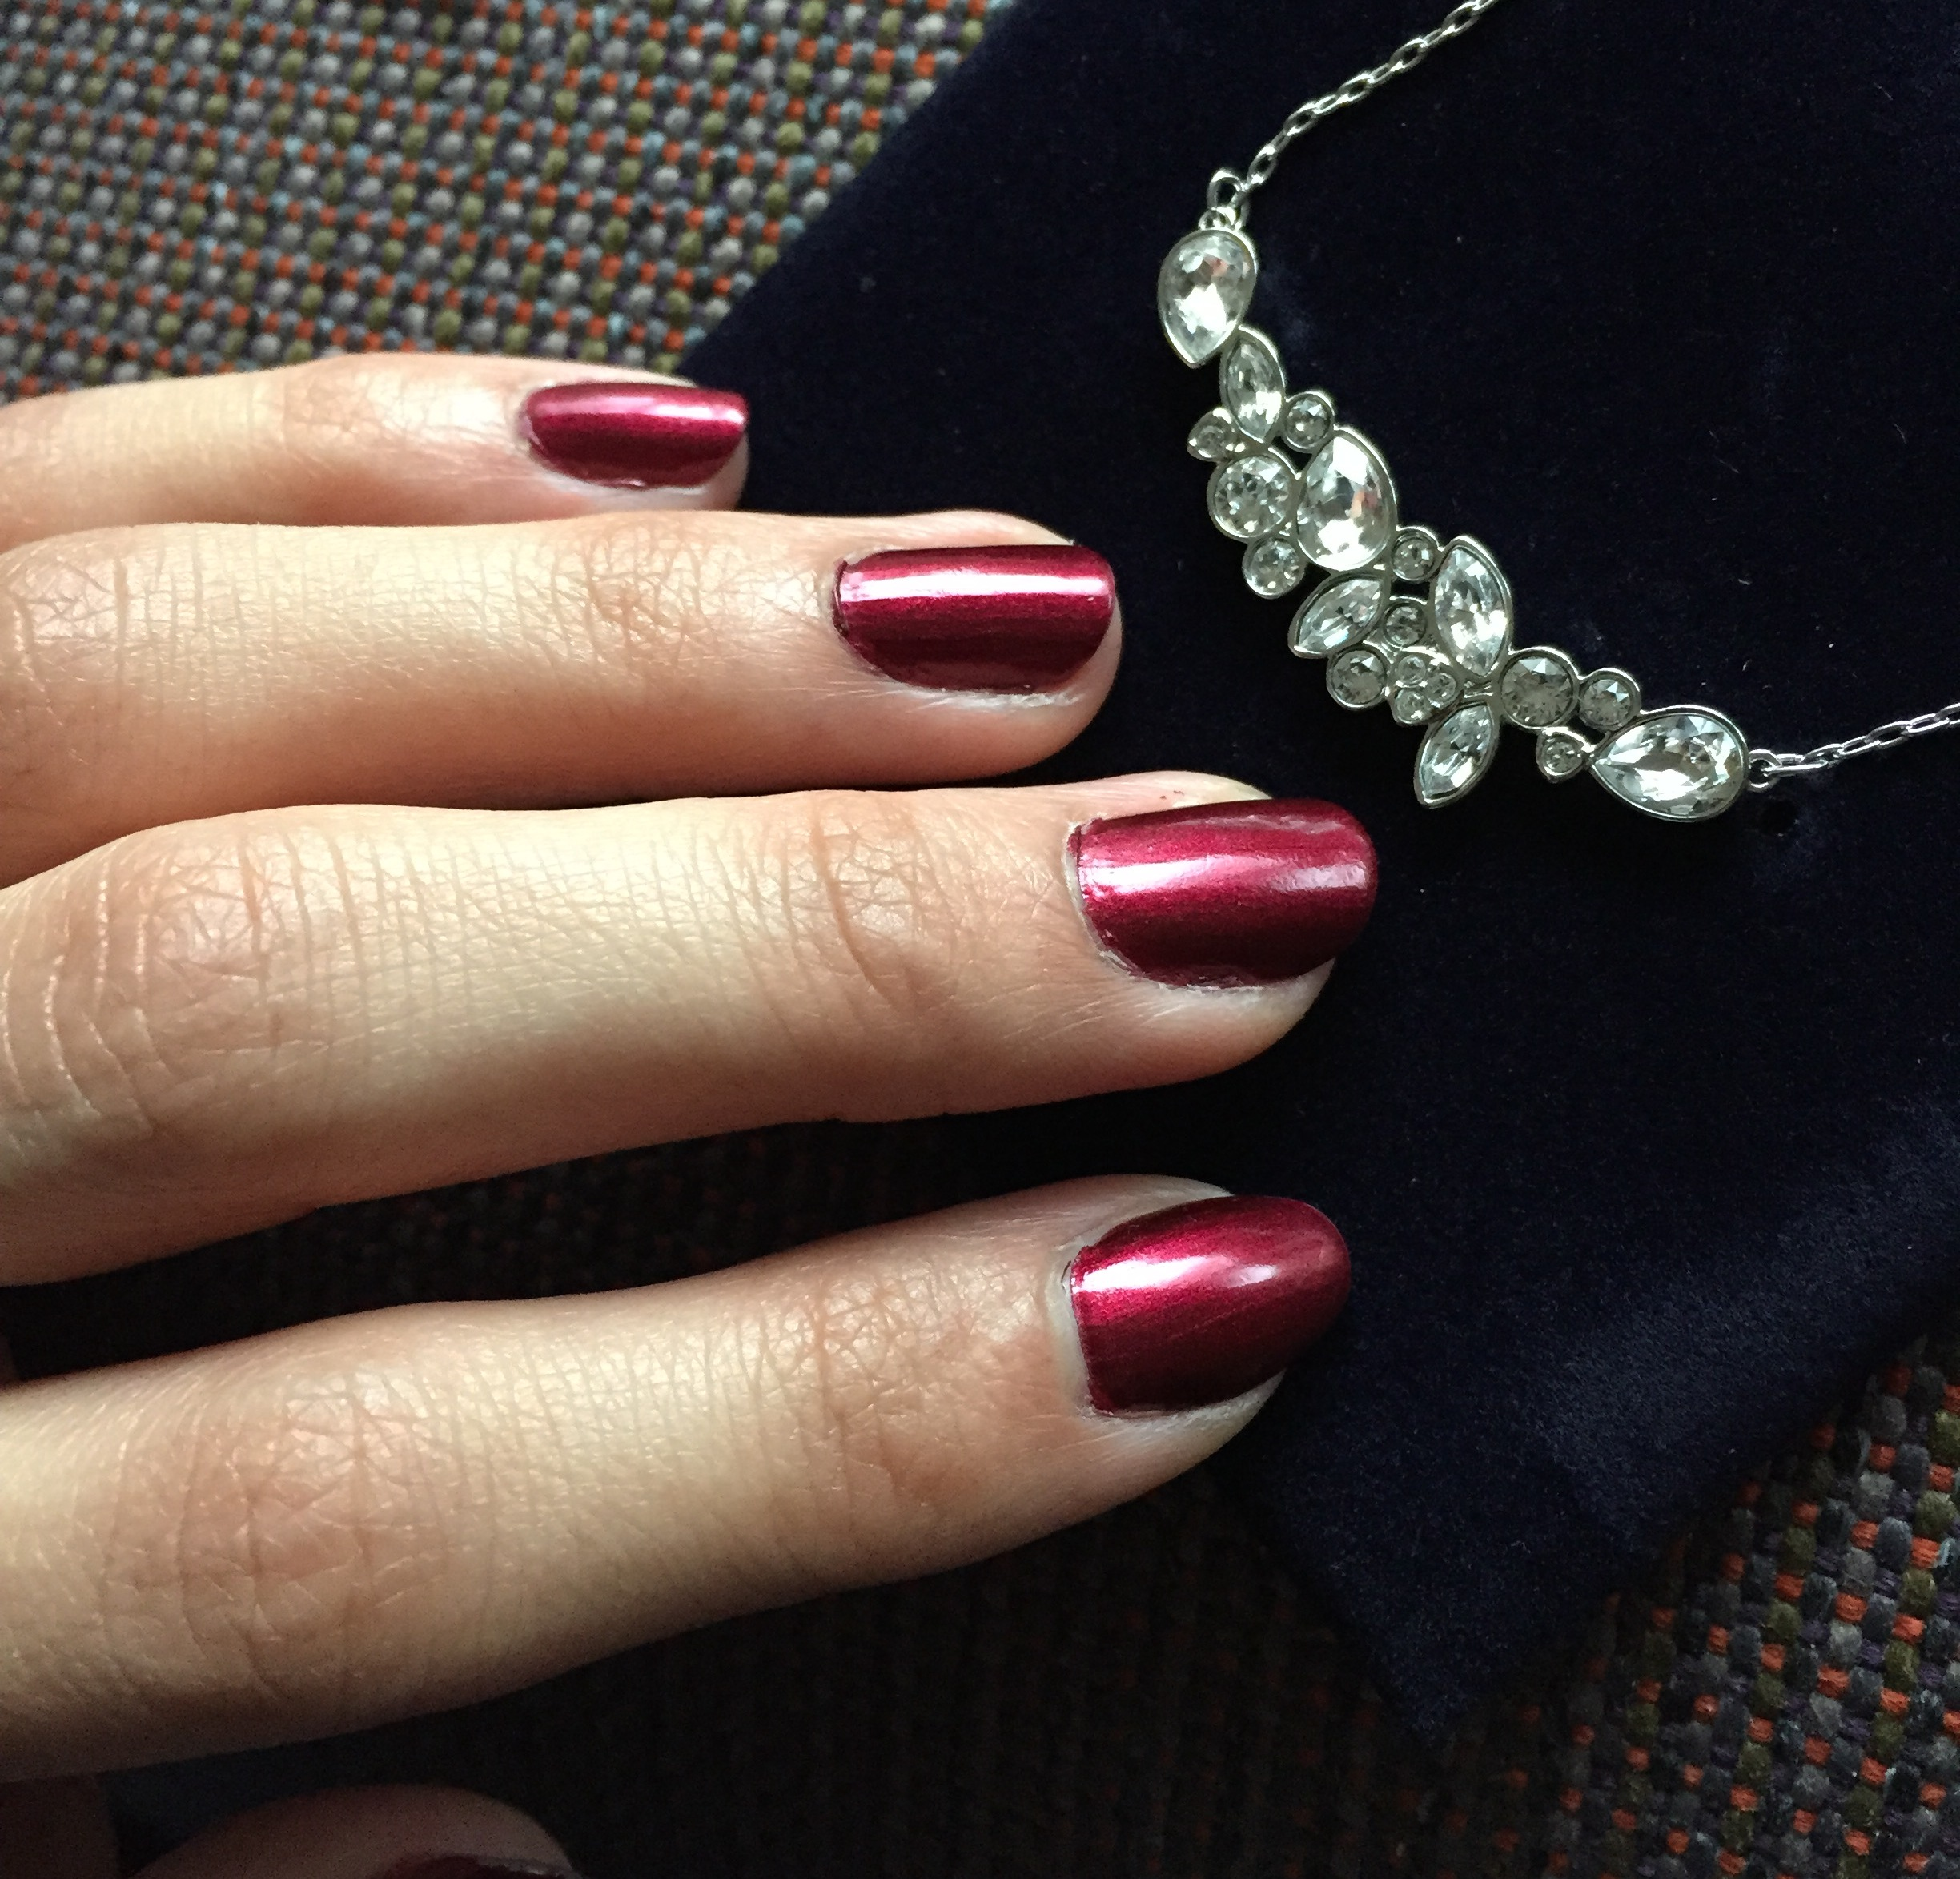 OPI Bogotá Blackberry + Swarovski necklace